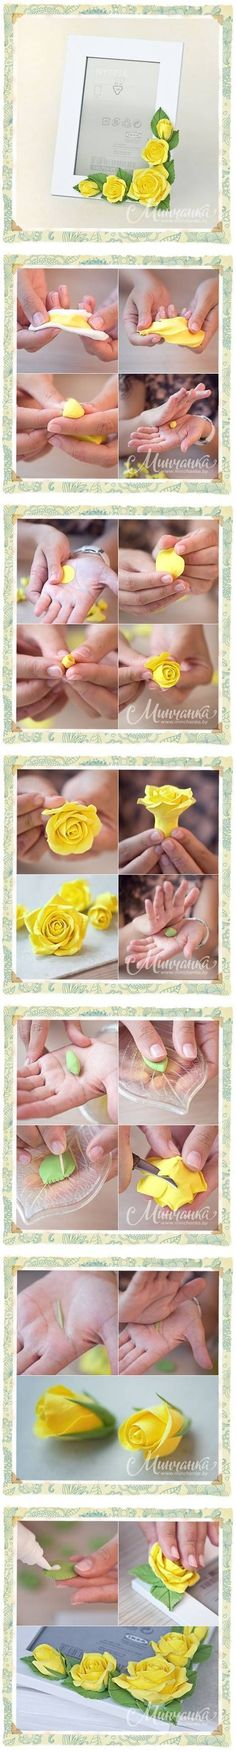 How To Make A Rose From Clay diy crafts diy crafts how to tutorial craft flowers